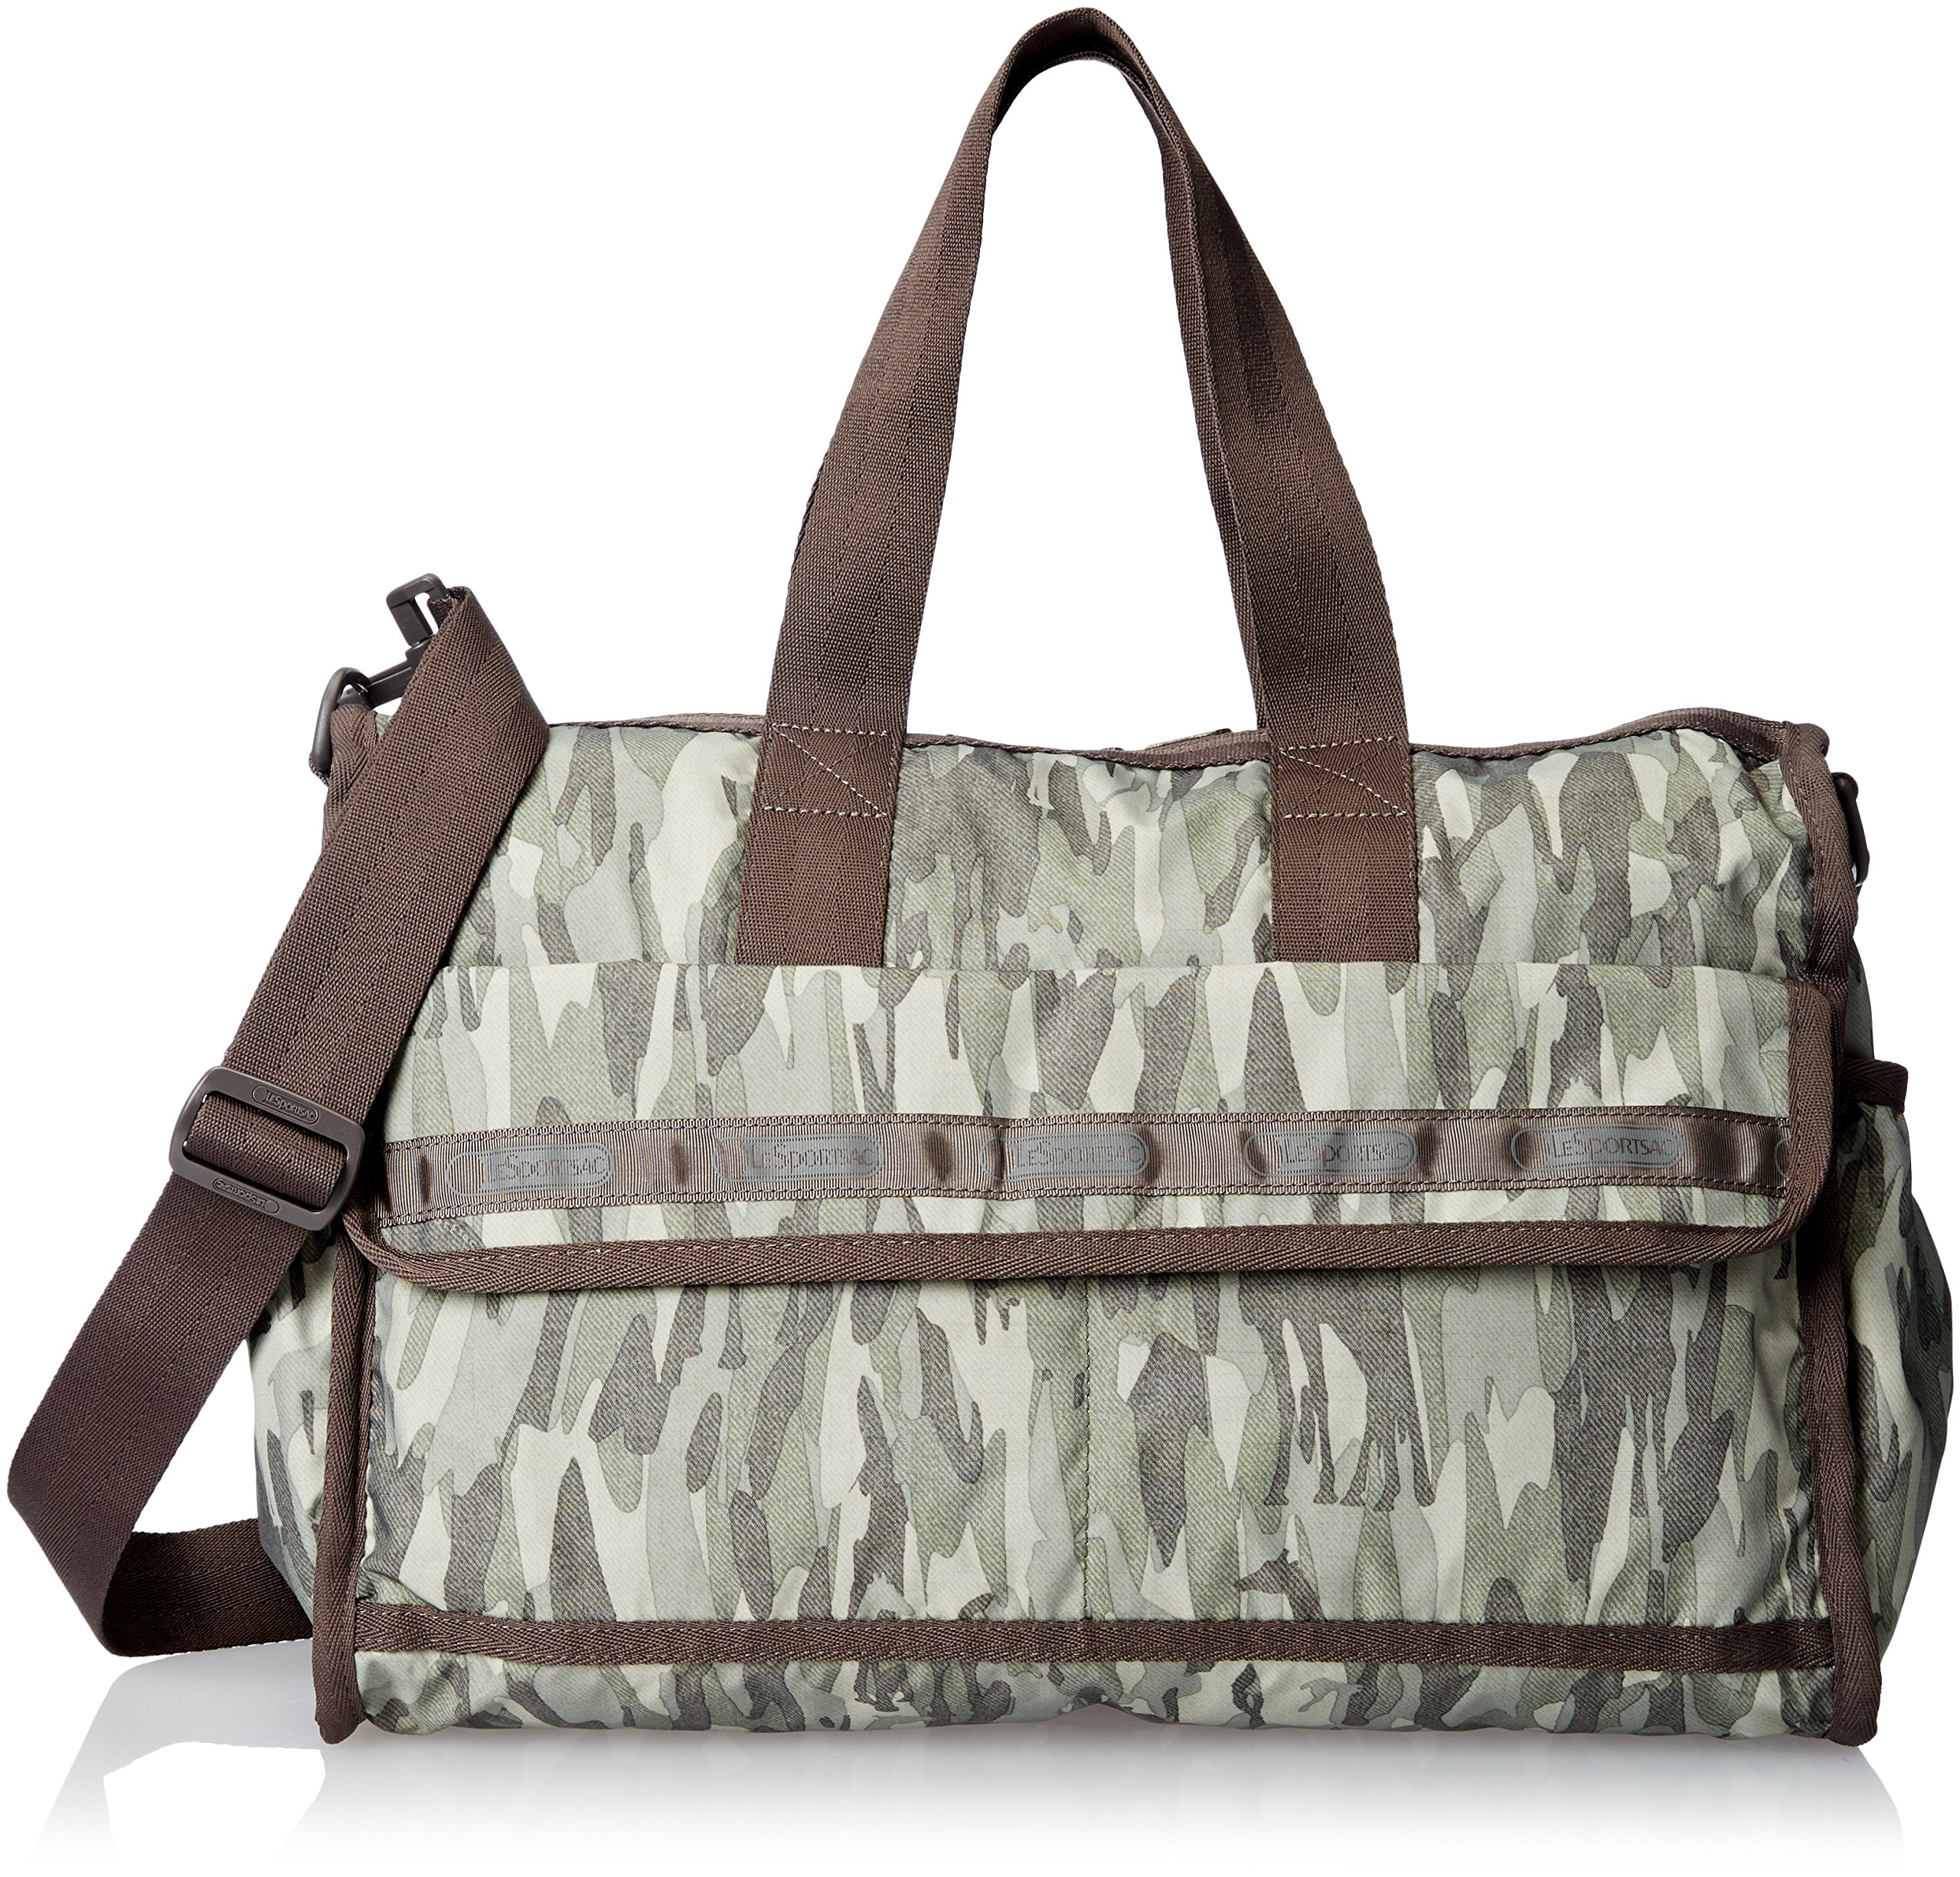 LeSportsac Baby Travel Carry On Bag, Animal Camo, One Size by LeSportsac